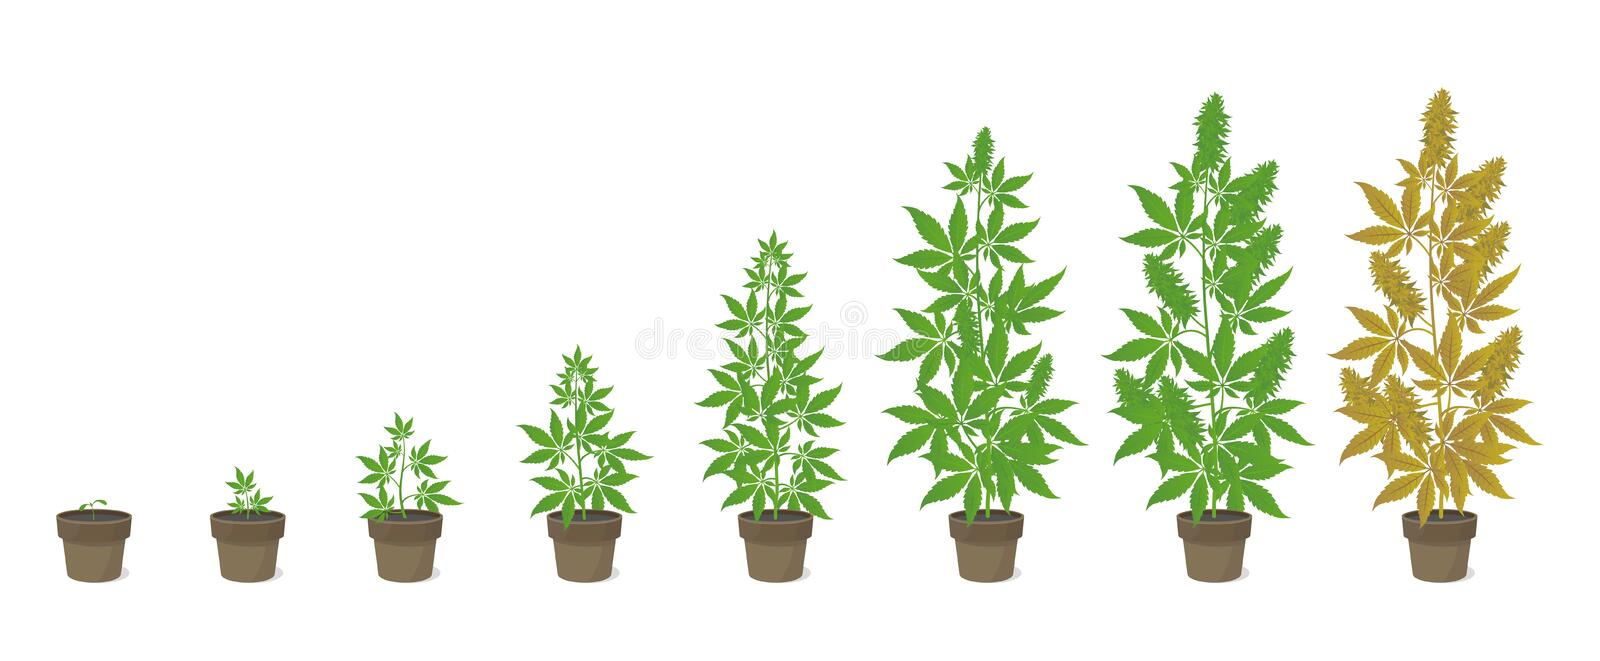 Growth stages of hemp potted plant. Marijuana phases set. Cannabis indica ripening period. The life cycle. Weed Growing. Isolated infographic vector stock illustration